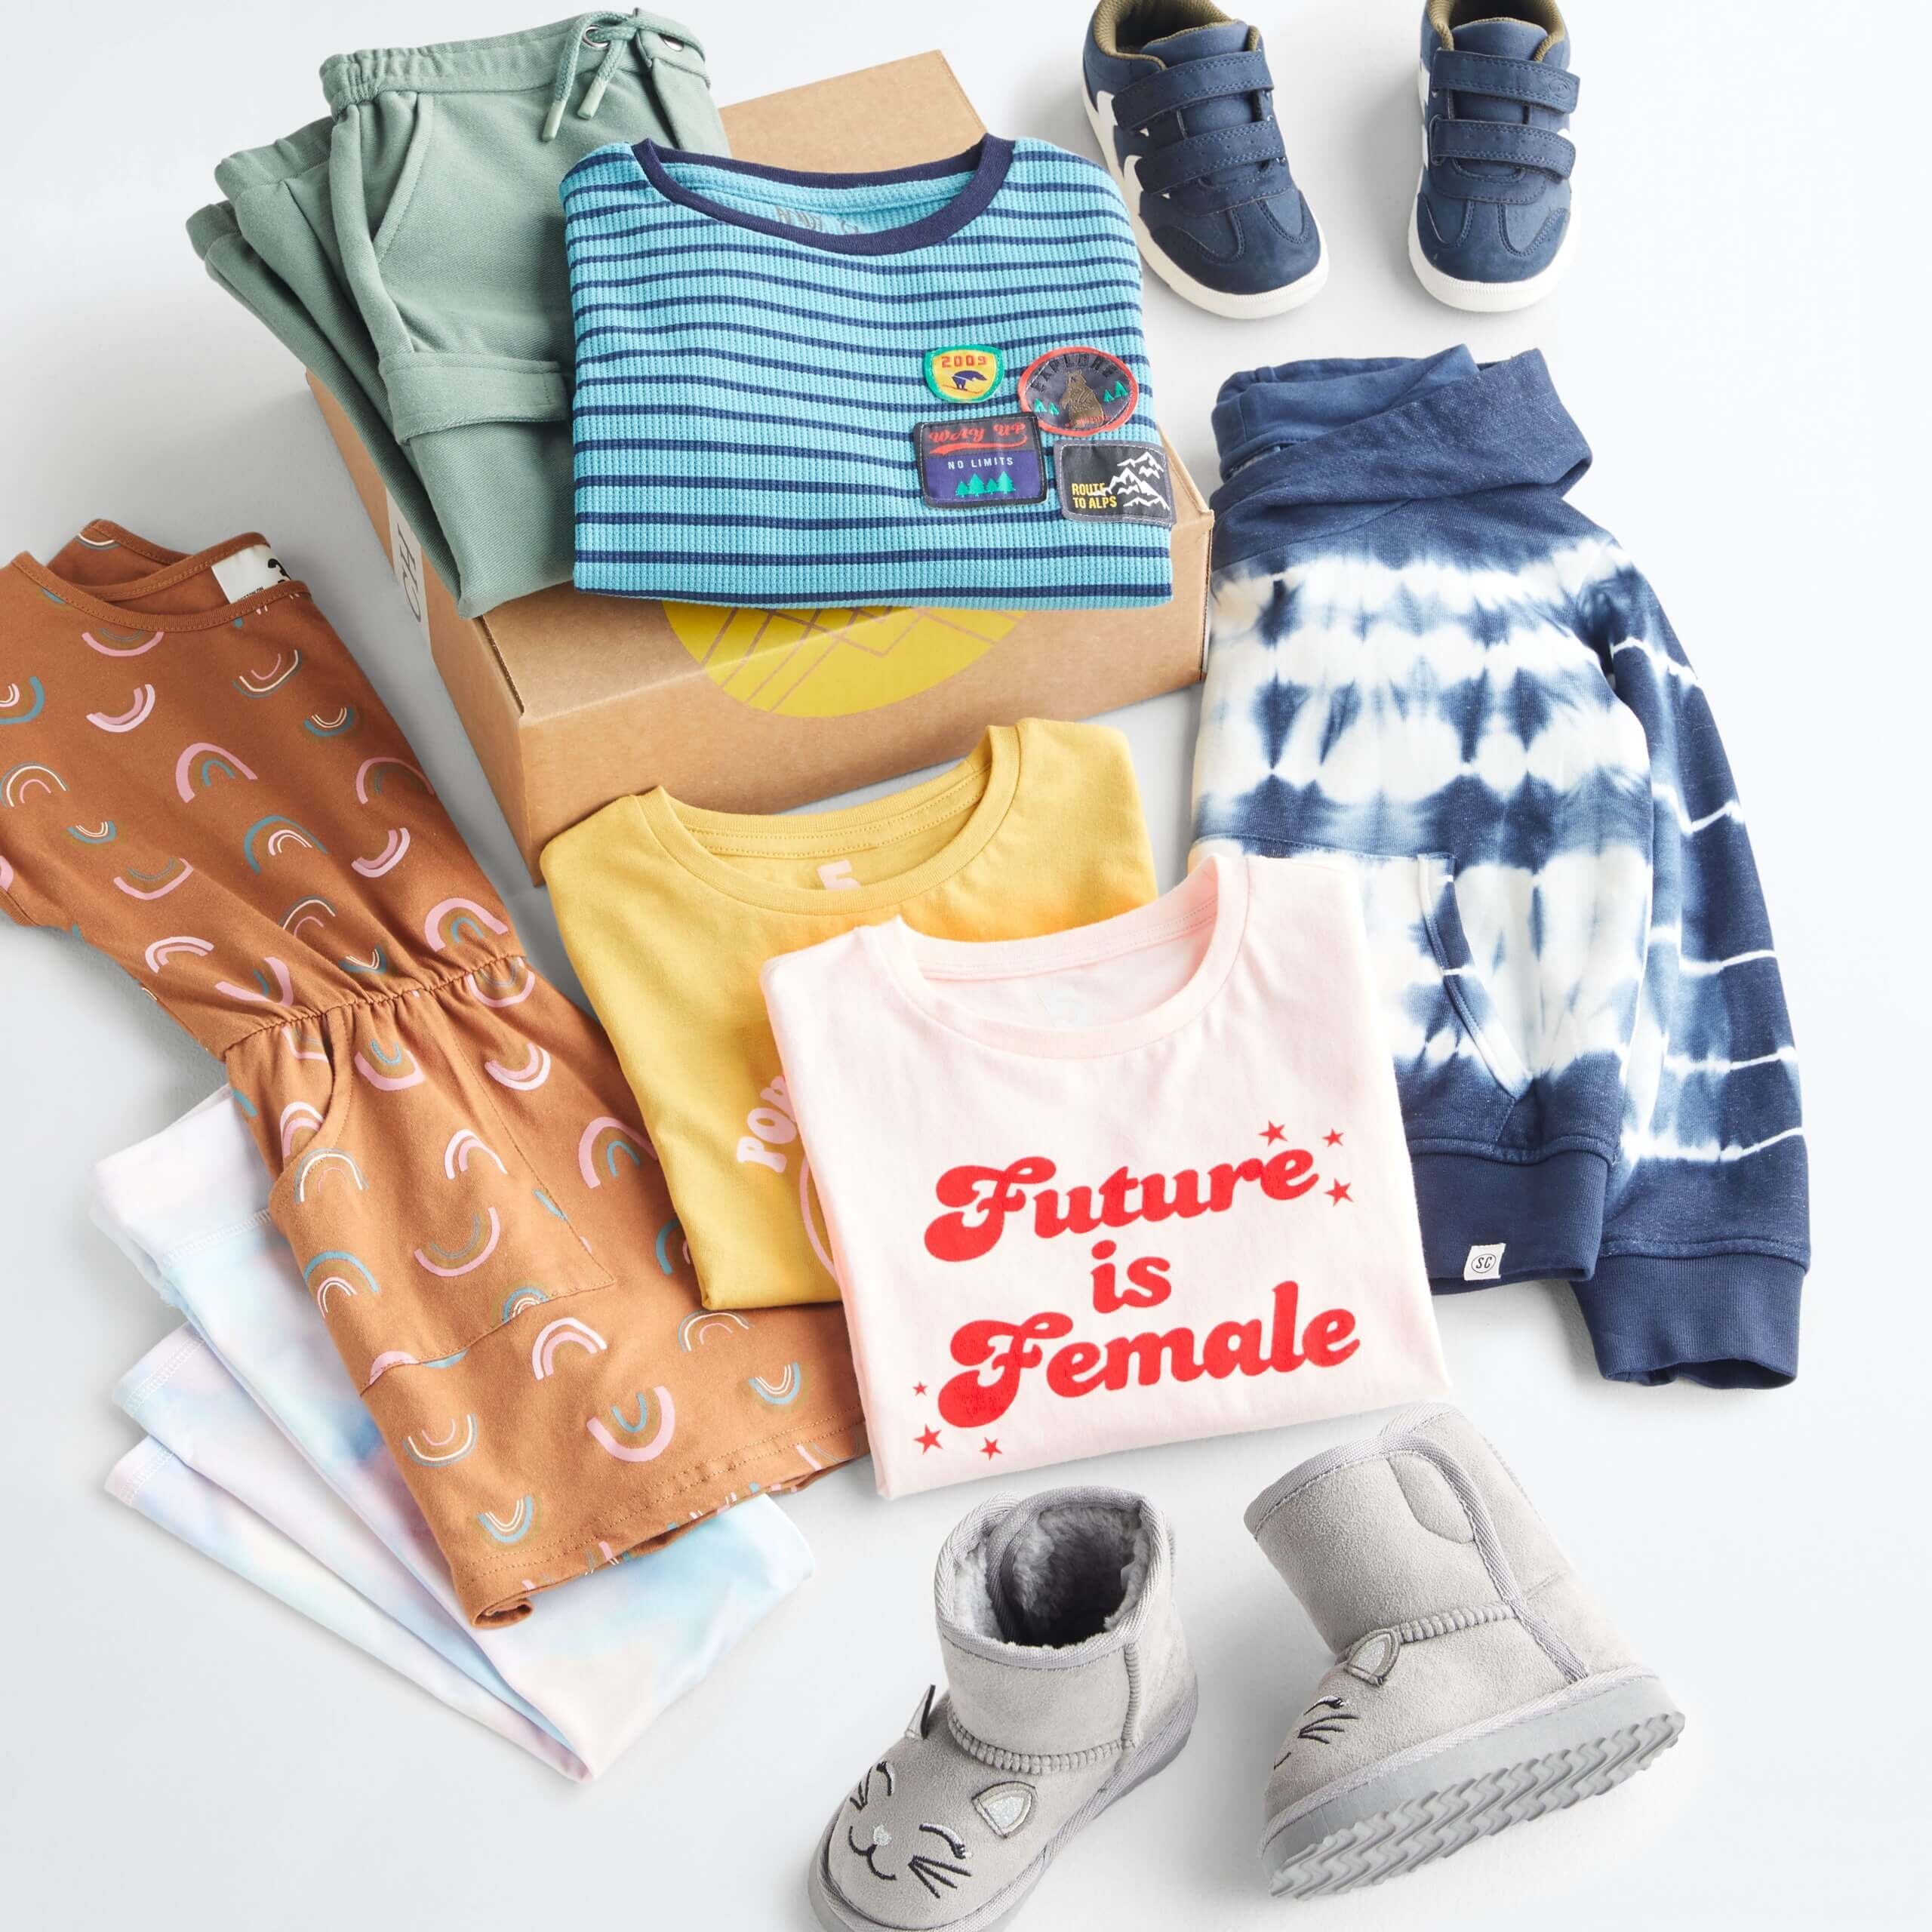 Stitch Fix Kid's outfit laydown featuring green pants and blue striped shirt on Stitch Fix delivery box, next to navy blue sneakers, navy blue tie-dye hoodie, pink and yellow t-shirts, silver boots, brown dress with rainbow print and light blue and light pink tie-dye leggings.